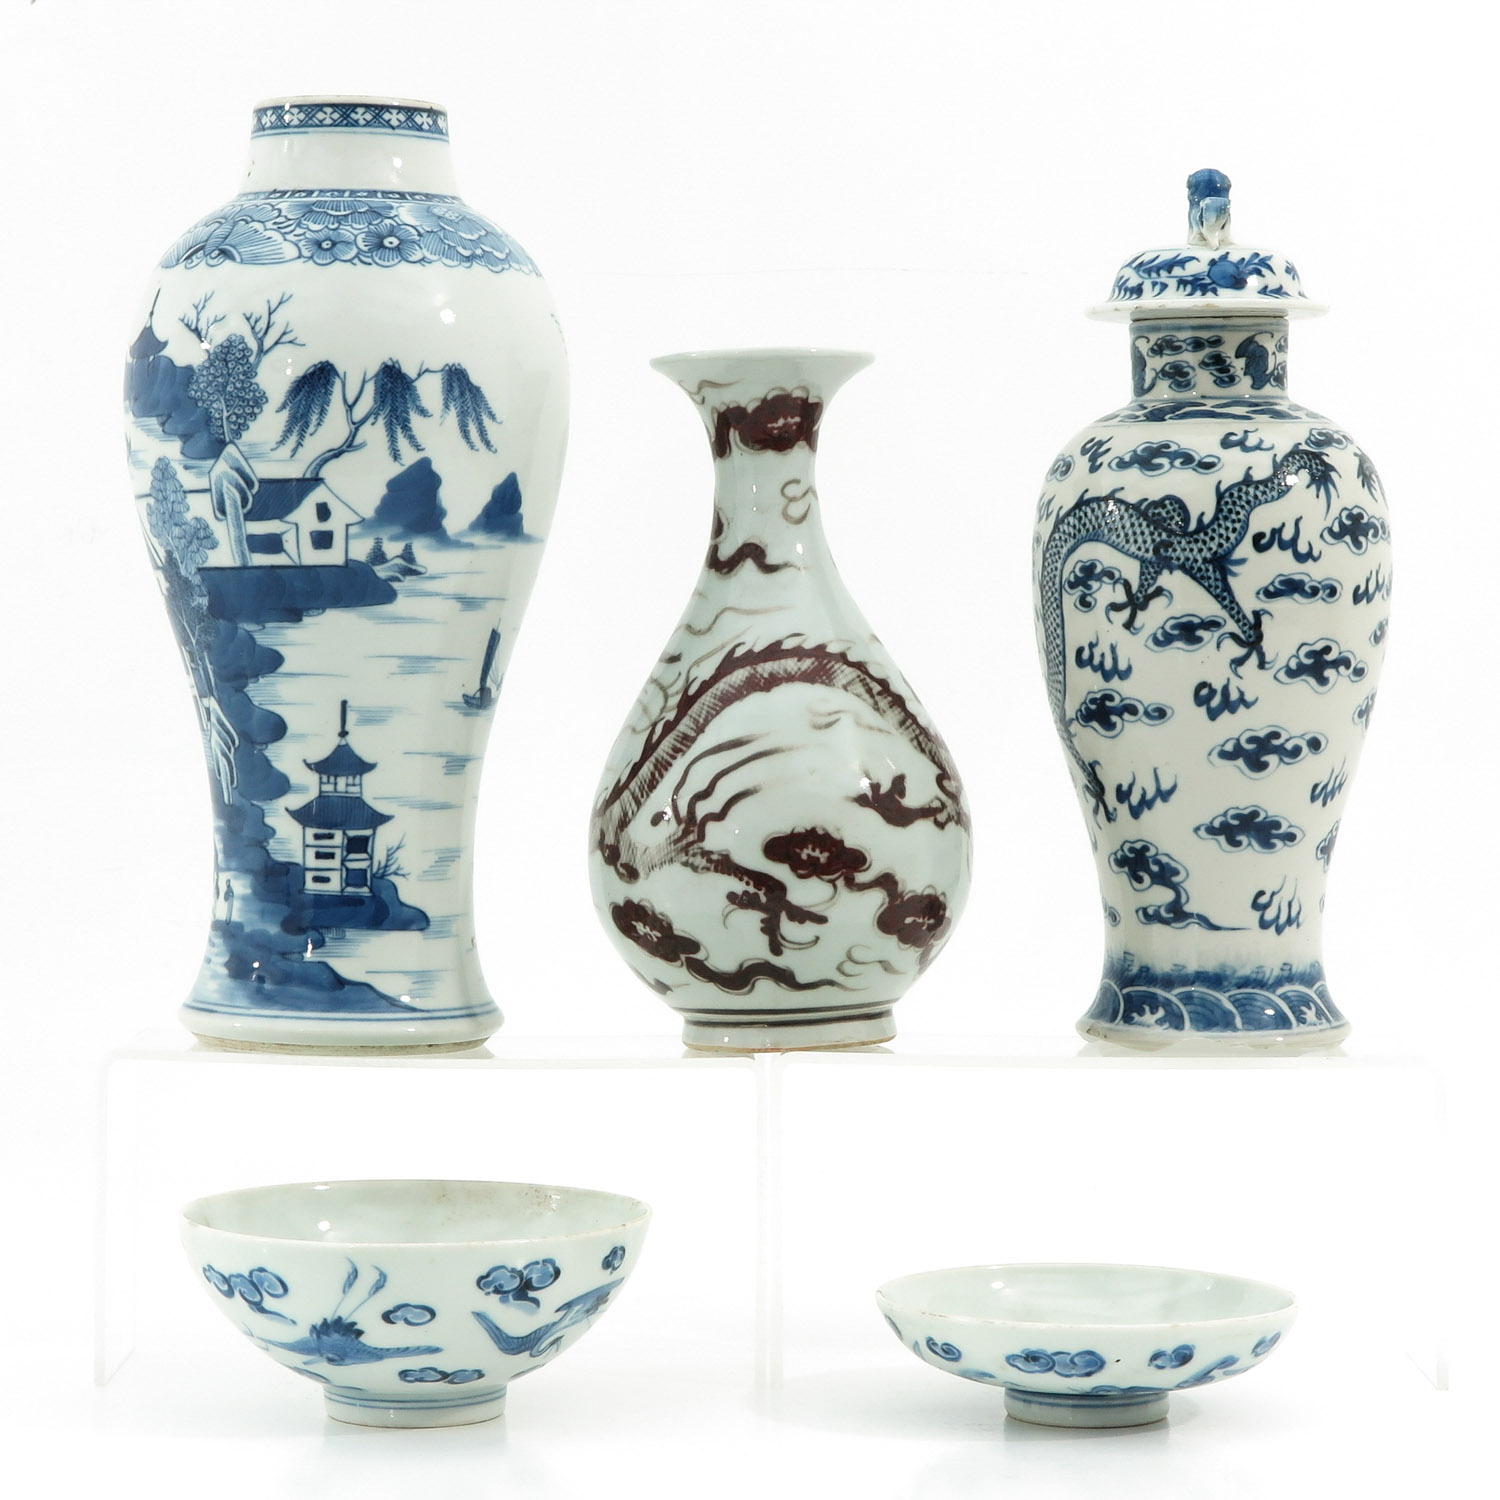 A Diverse Collection of Porcelain - Image 2 of 10